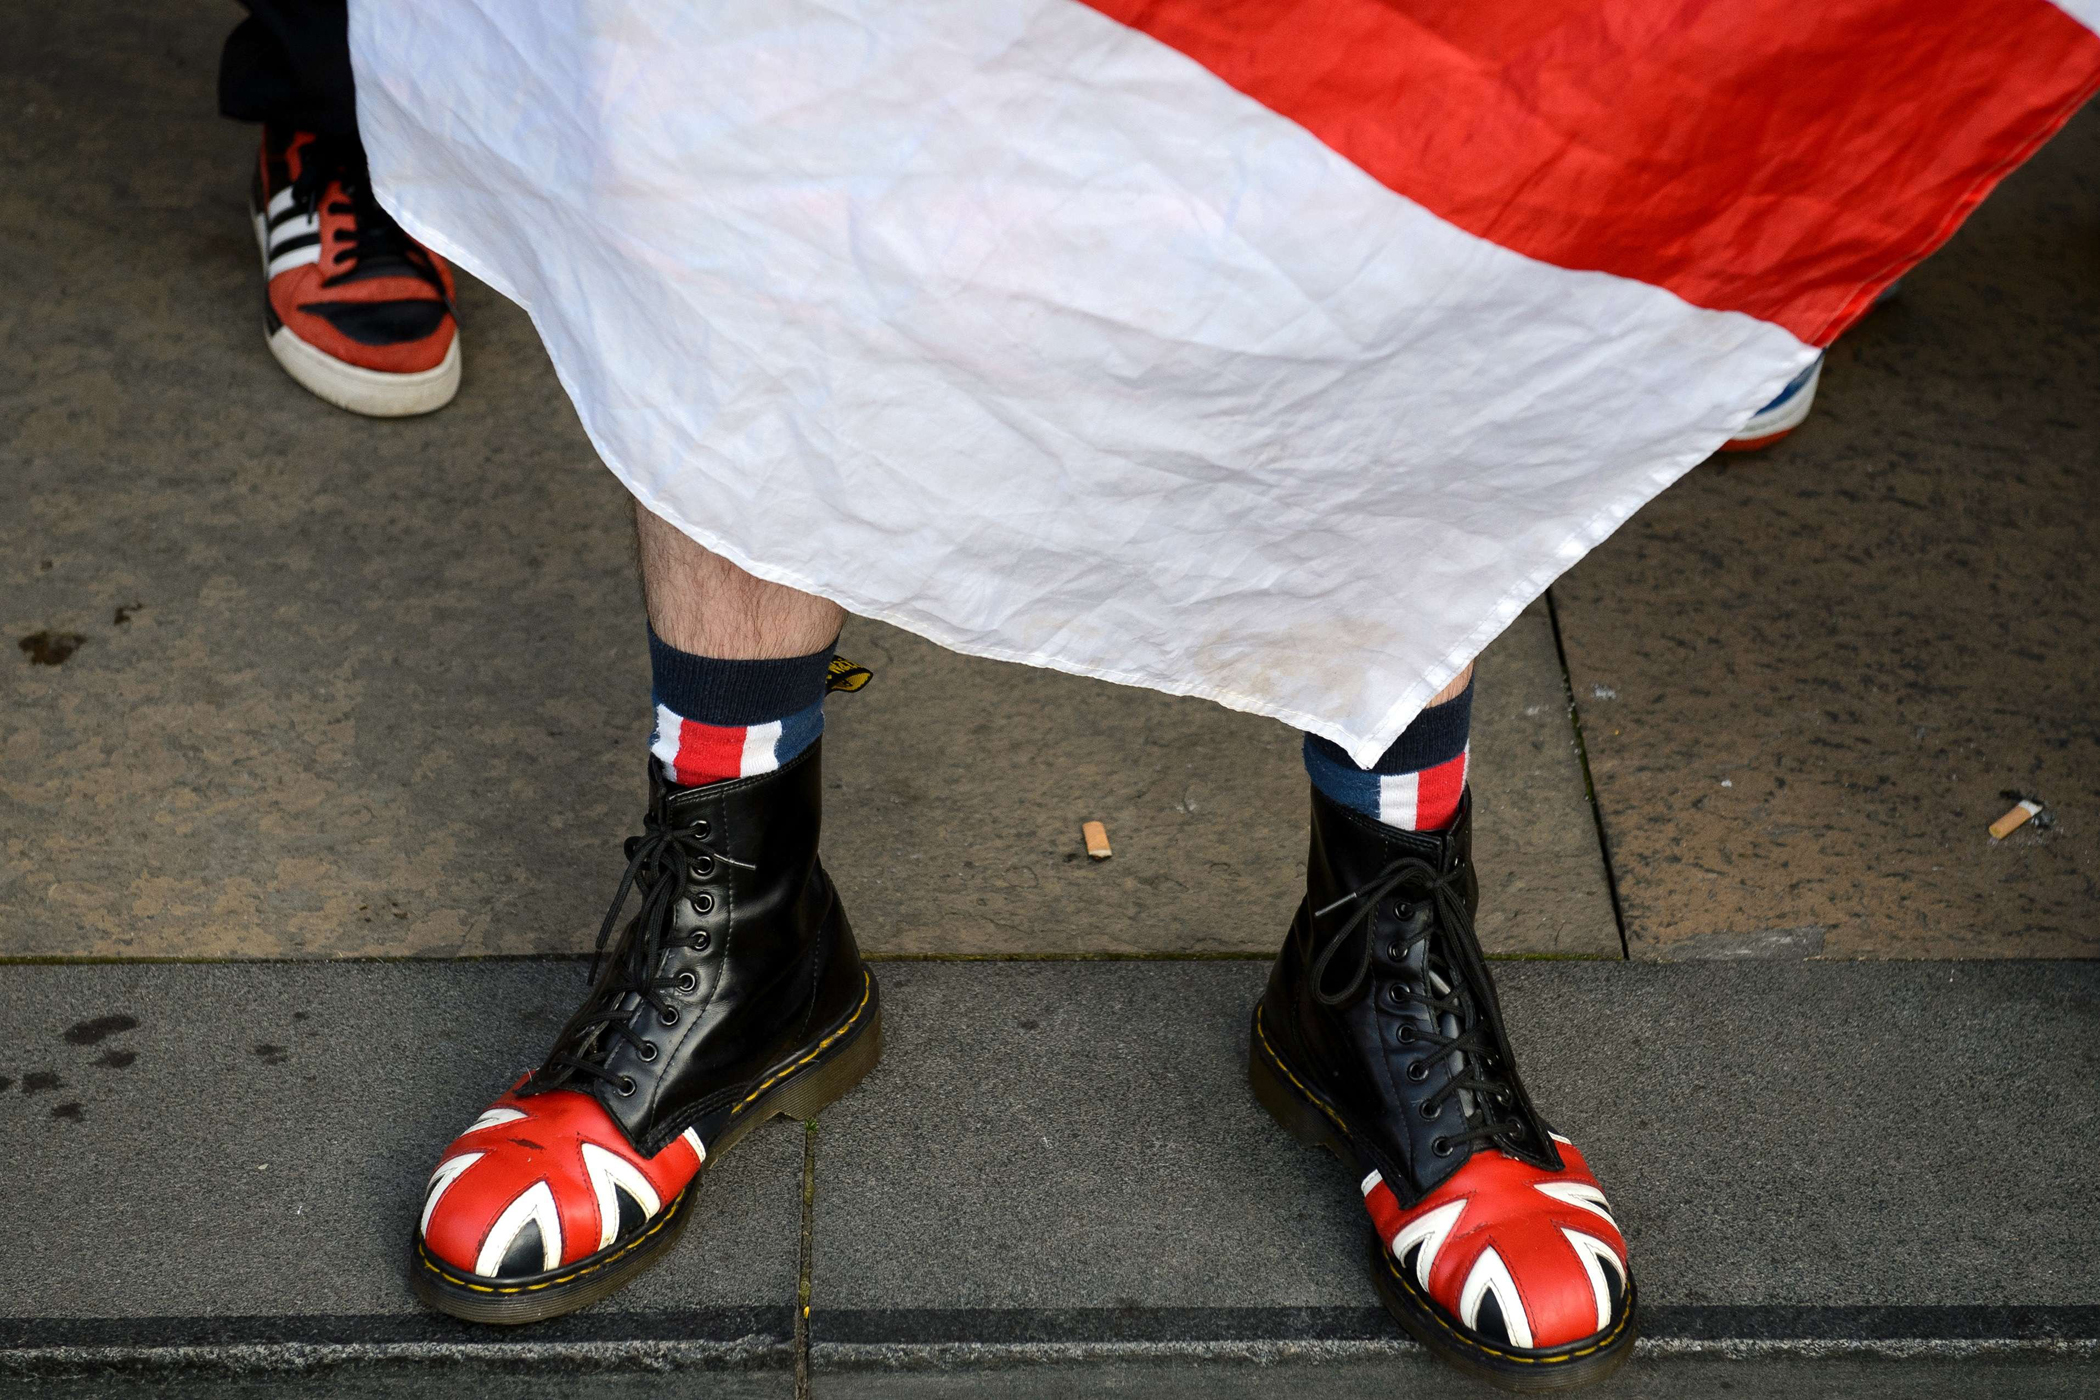 An anti-independence activist wearing shoes bearing the Union flag rallies opposite pro-independence supporters in Glasgow's George Square, in Scotland, on Sept. 17, 2014, on the eve of Scotland's independence referendum.